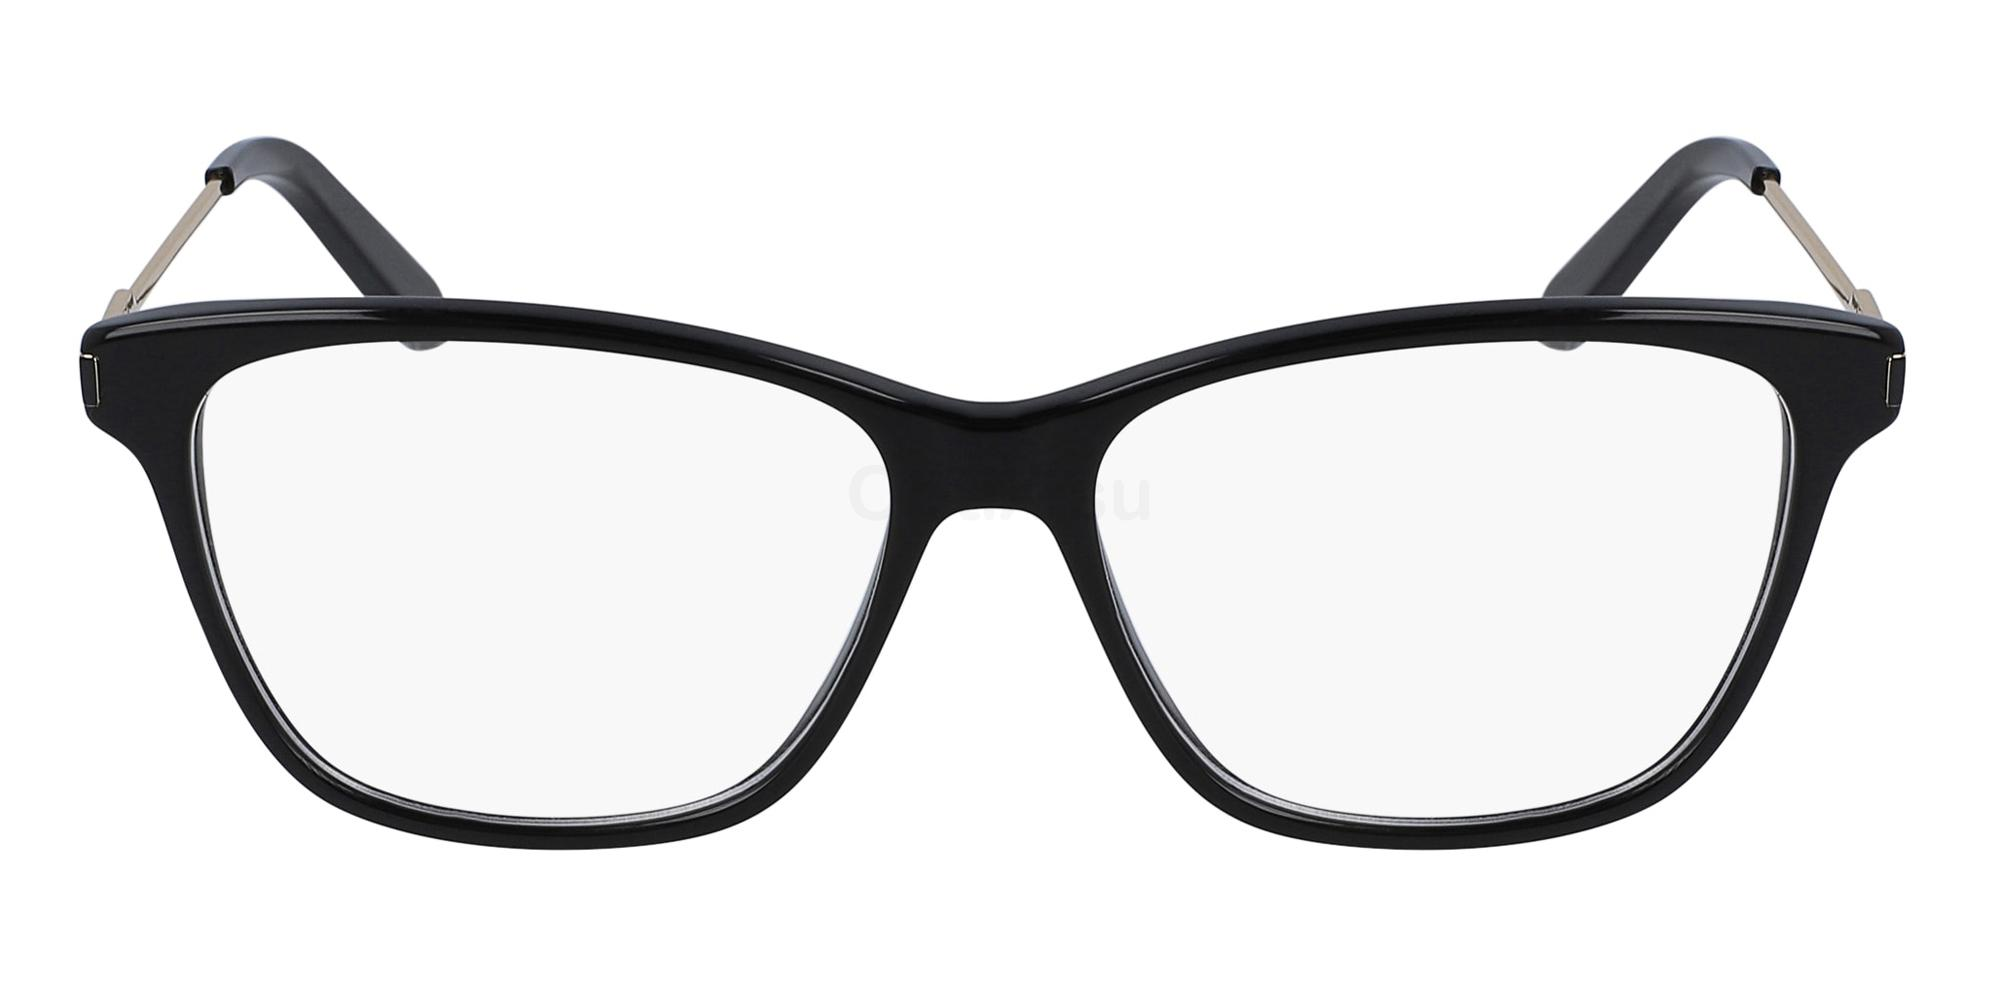 001 SF2851 Glasses, Salvatore Ferragamo